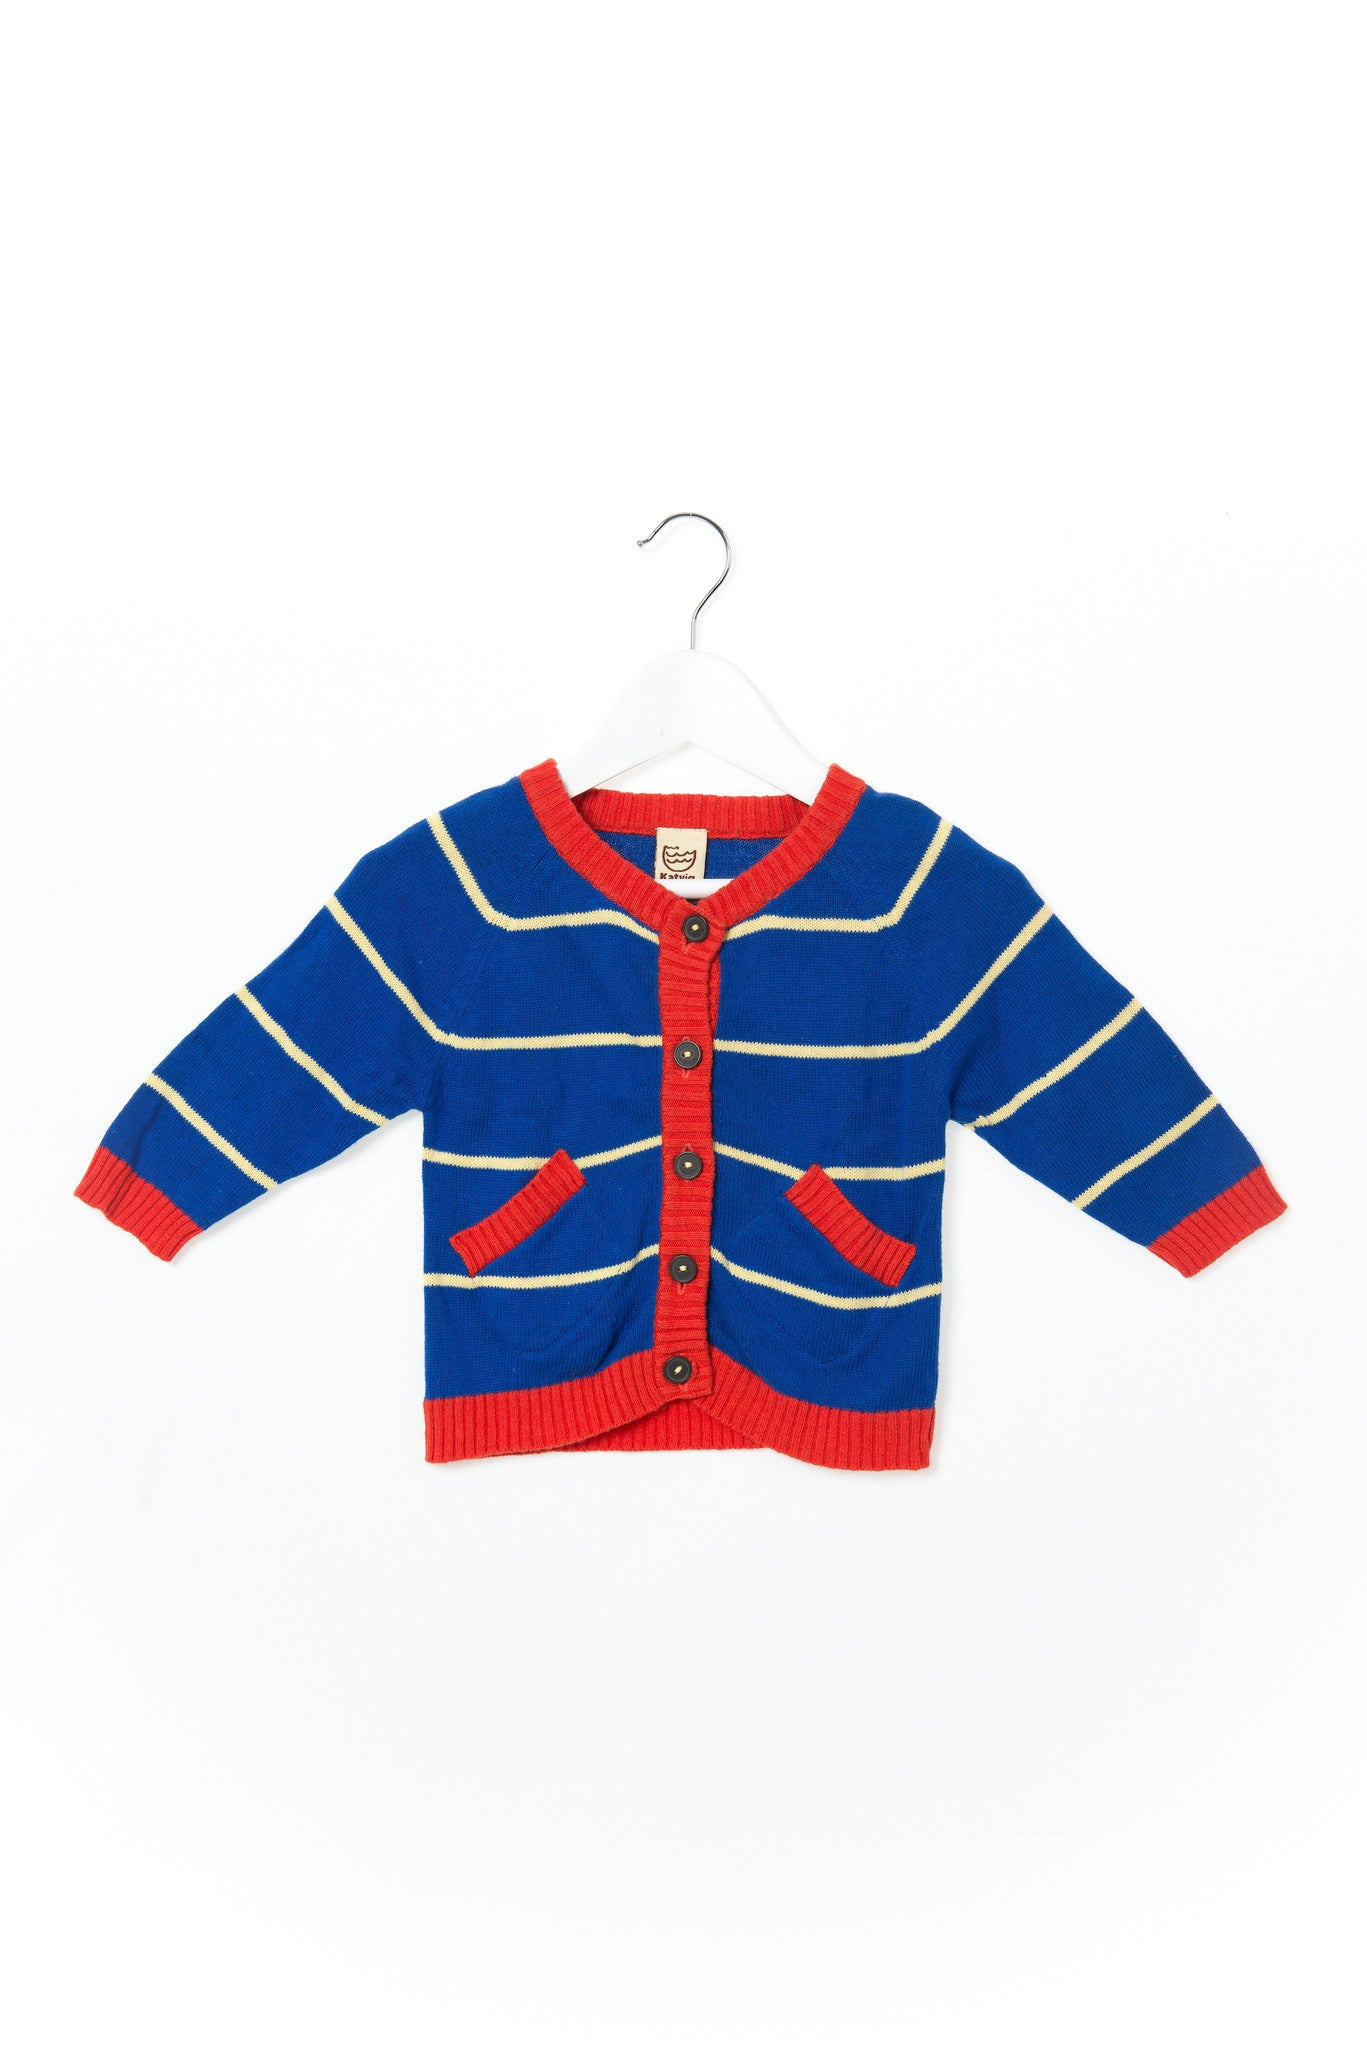 Katvig at Retykle | Online Shopping Discount Baby & Kids Clothes Hong Kong